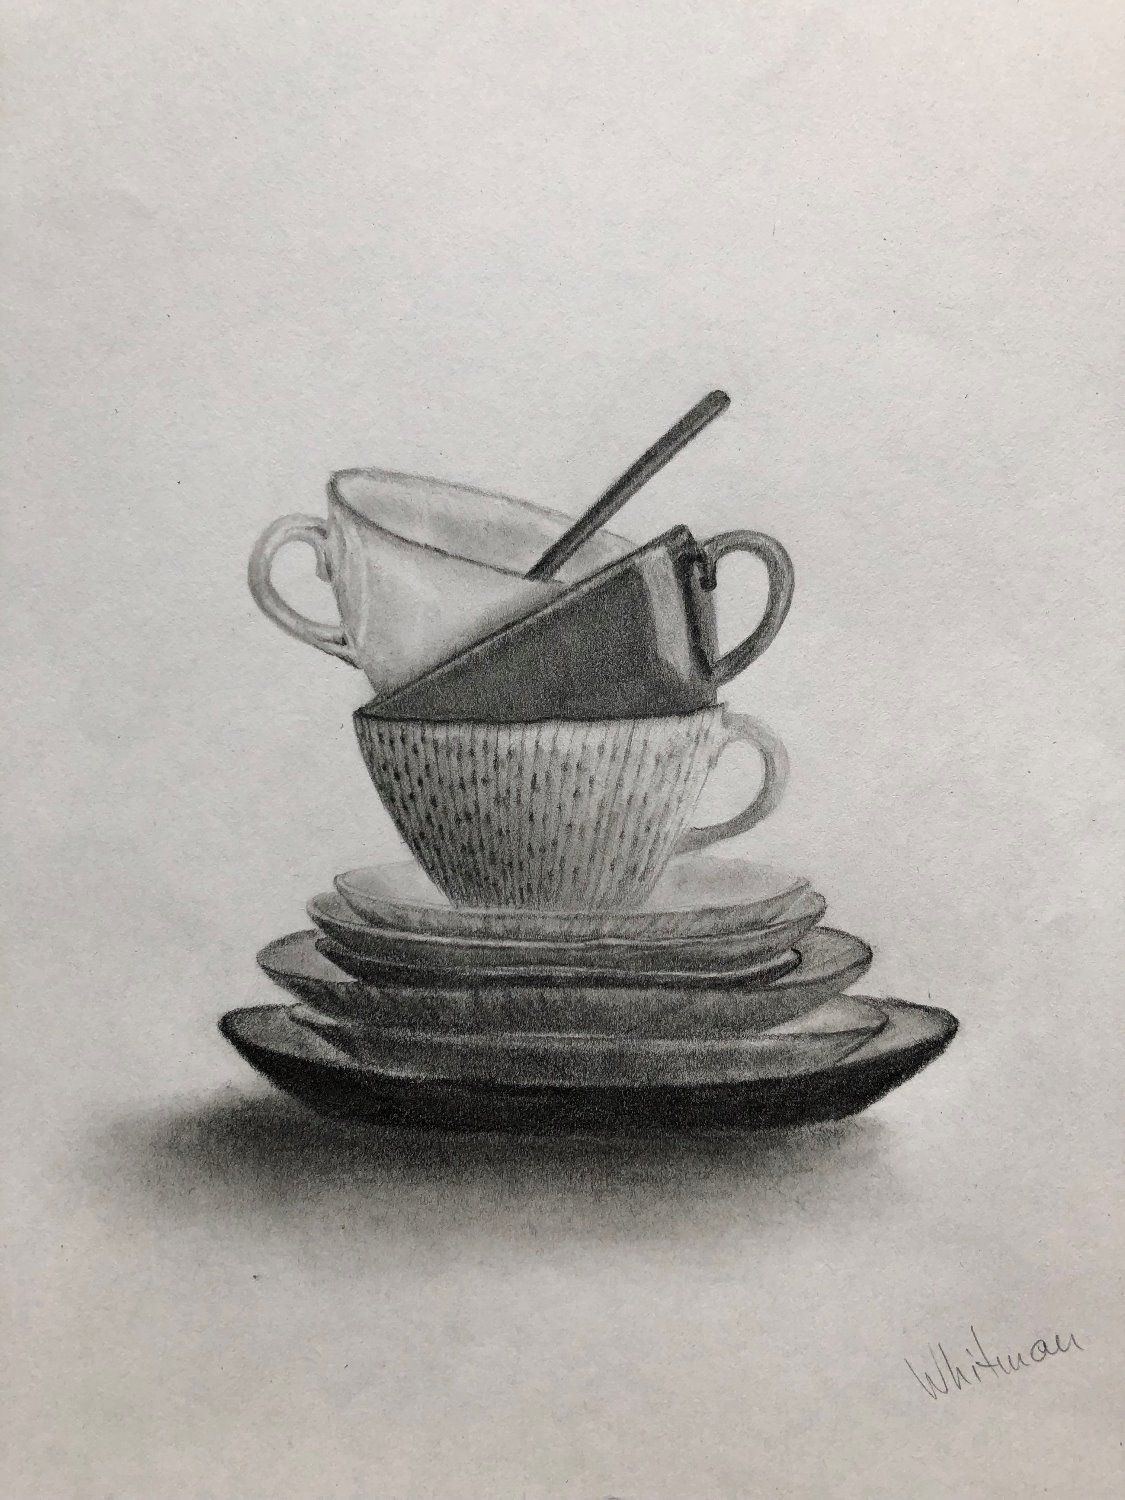 Pencil drawing a cup coffee or tea